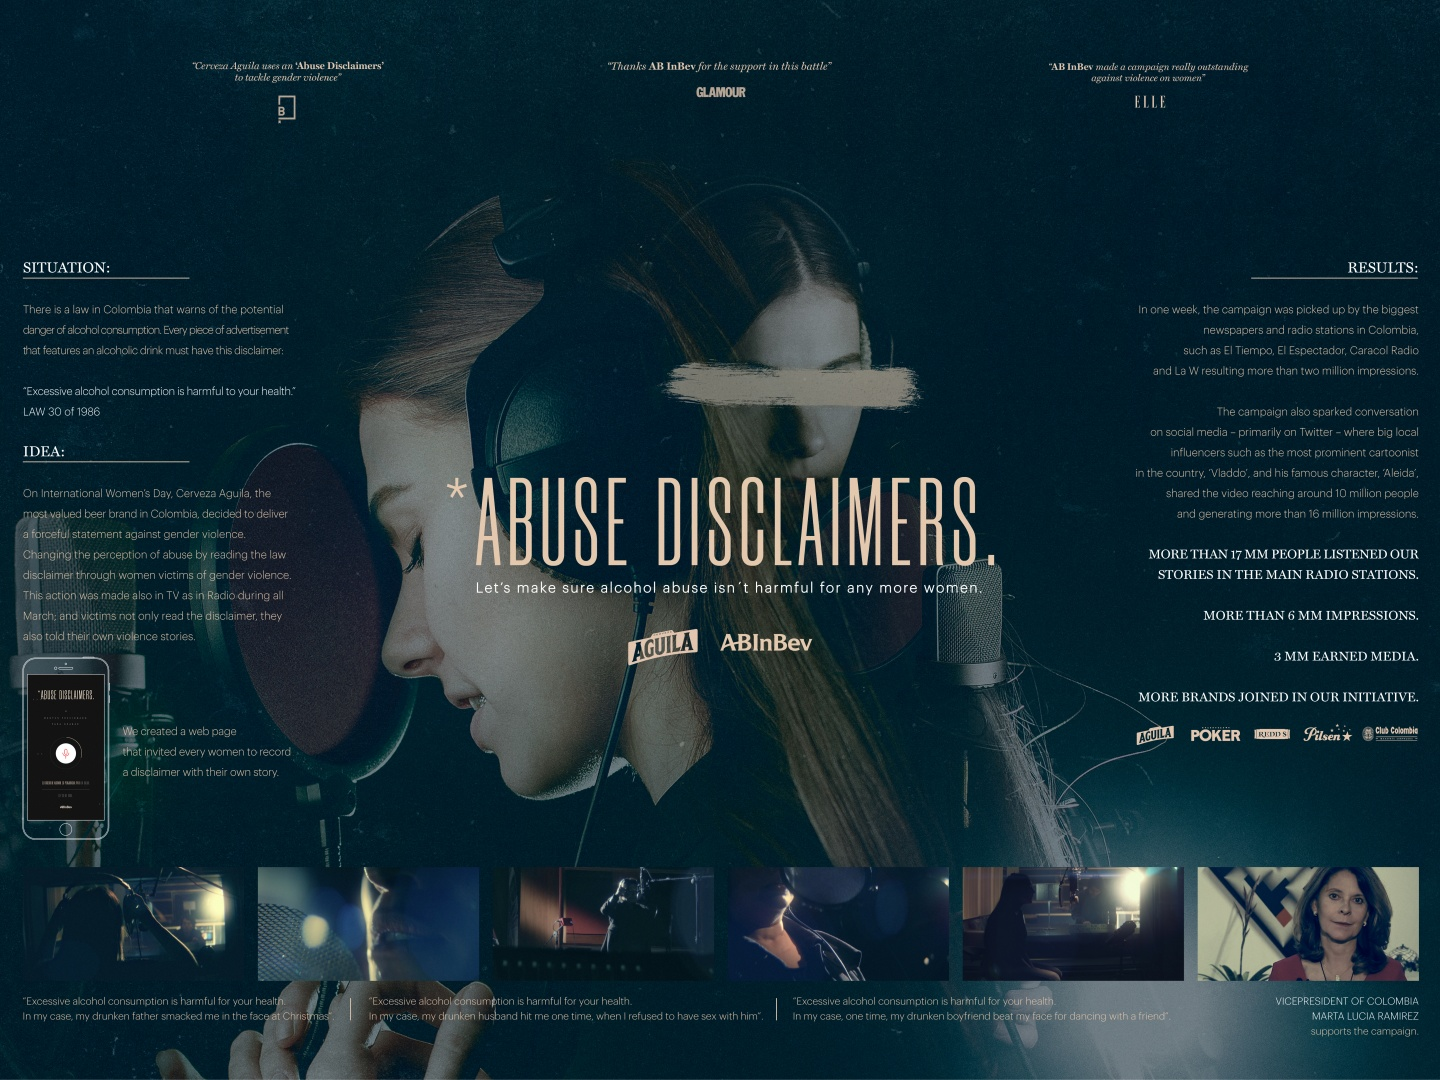 ABUSE DISCLAIMERS Thumbnail